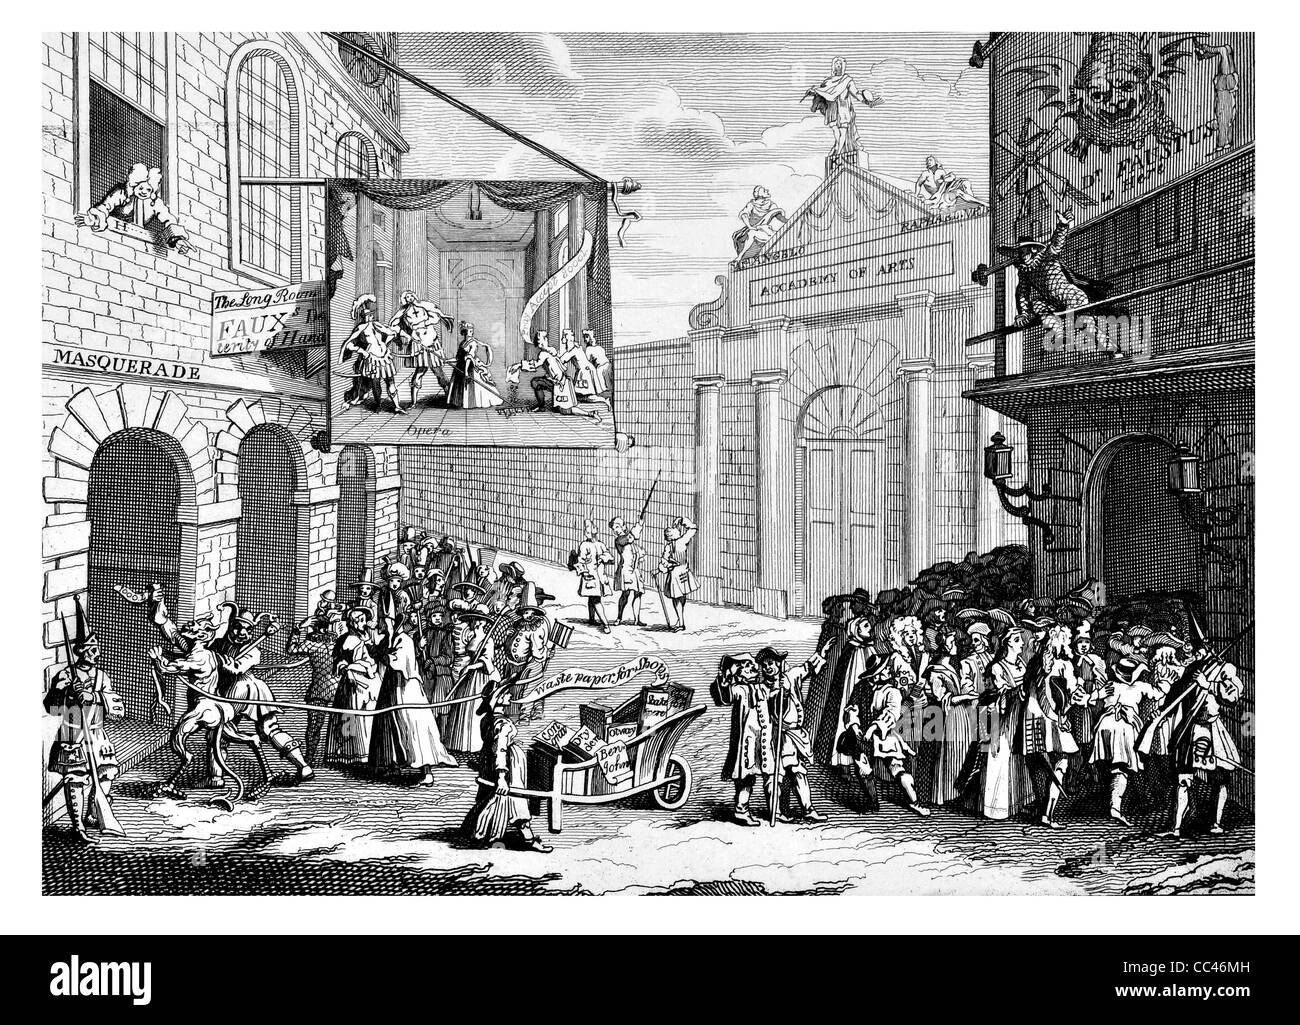 Masquerades and Operas Burlington Gate  engraving from The Works of Hogarth published London 1833 - Stock Image